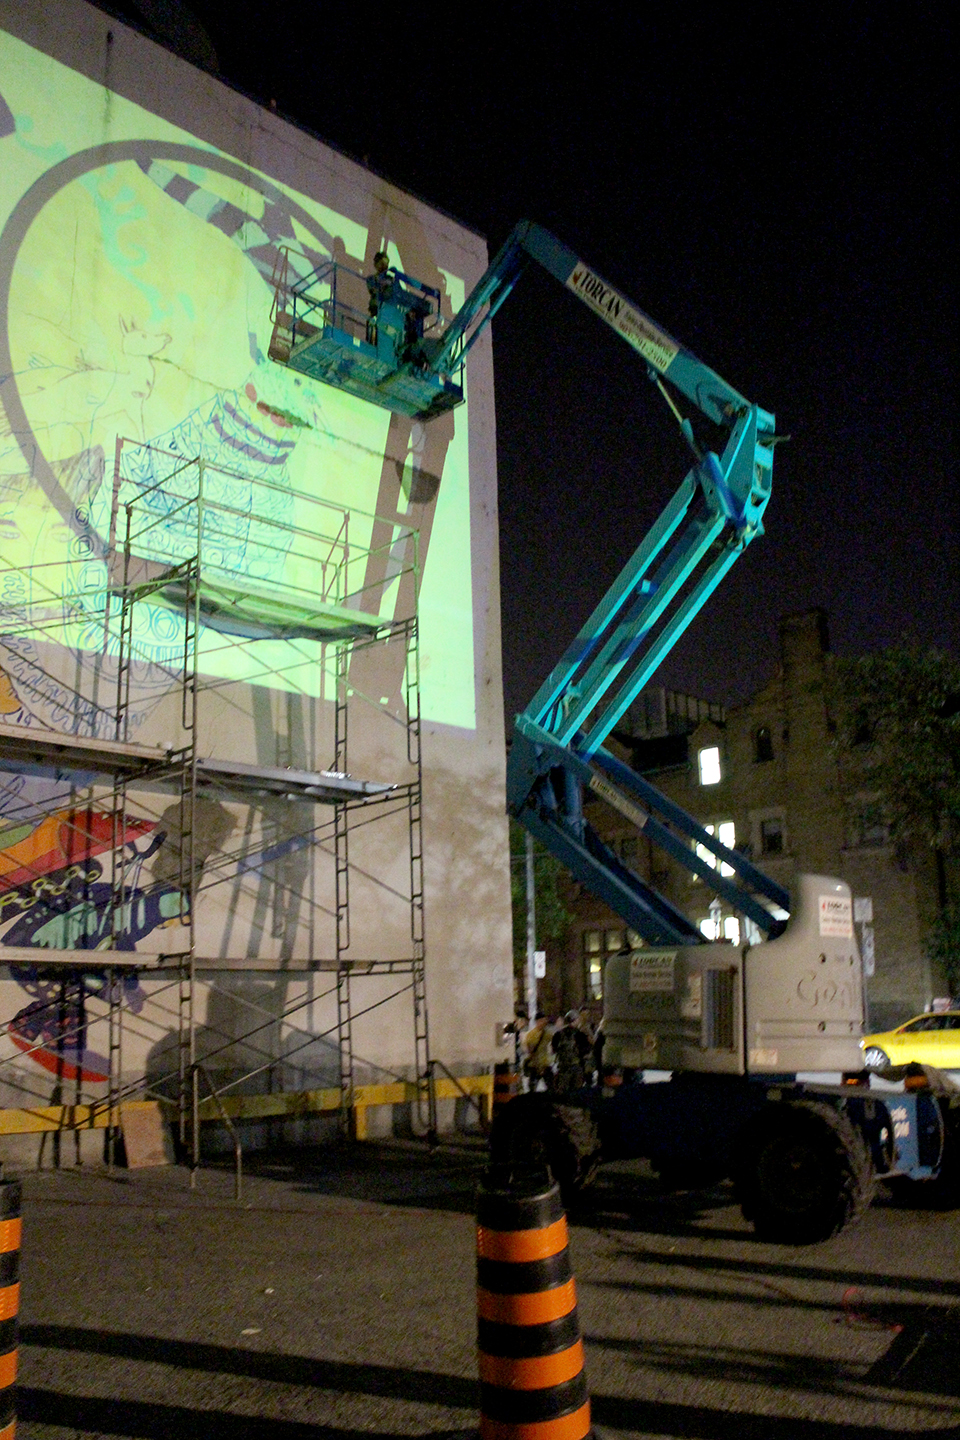 The mural was projected on the wall at night so that the artists could see and trace the outlines. Photo by Alexa Hatanaka.